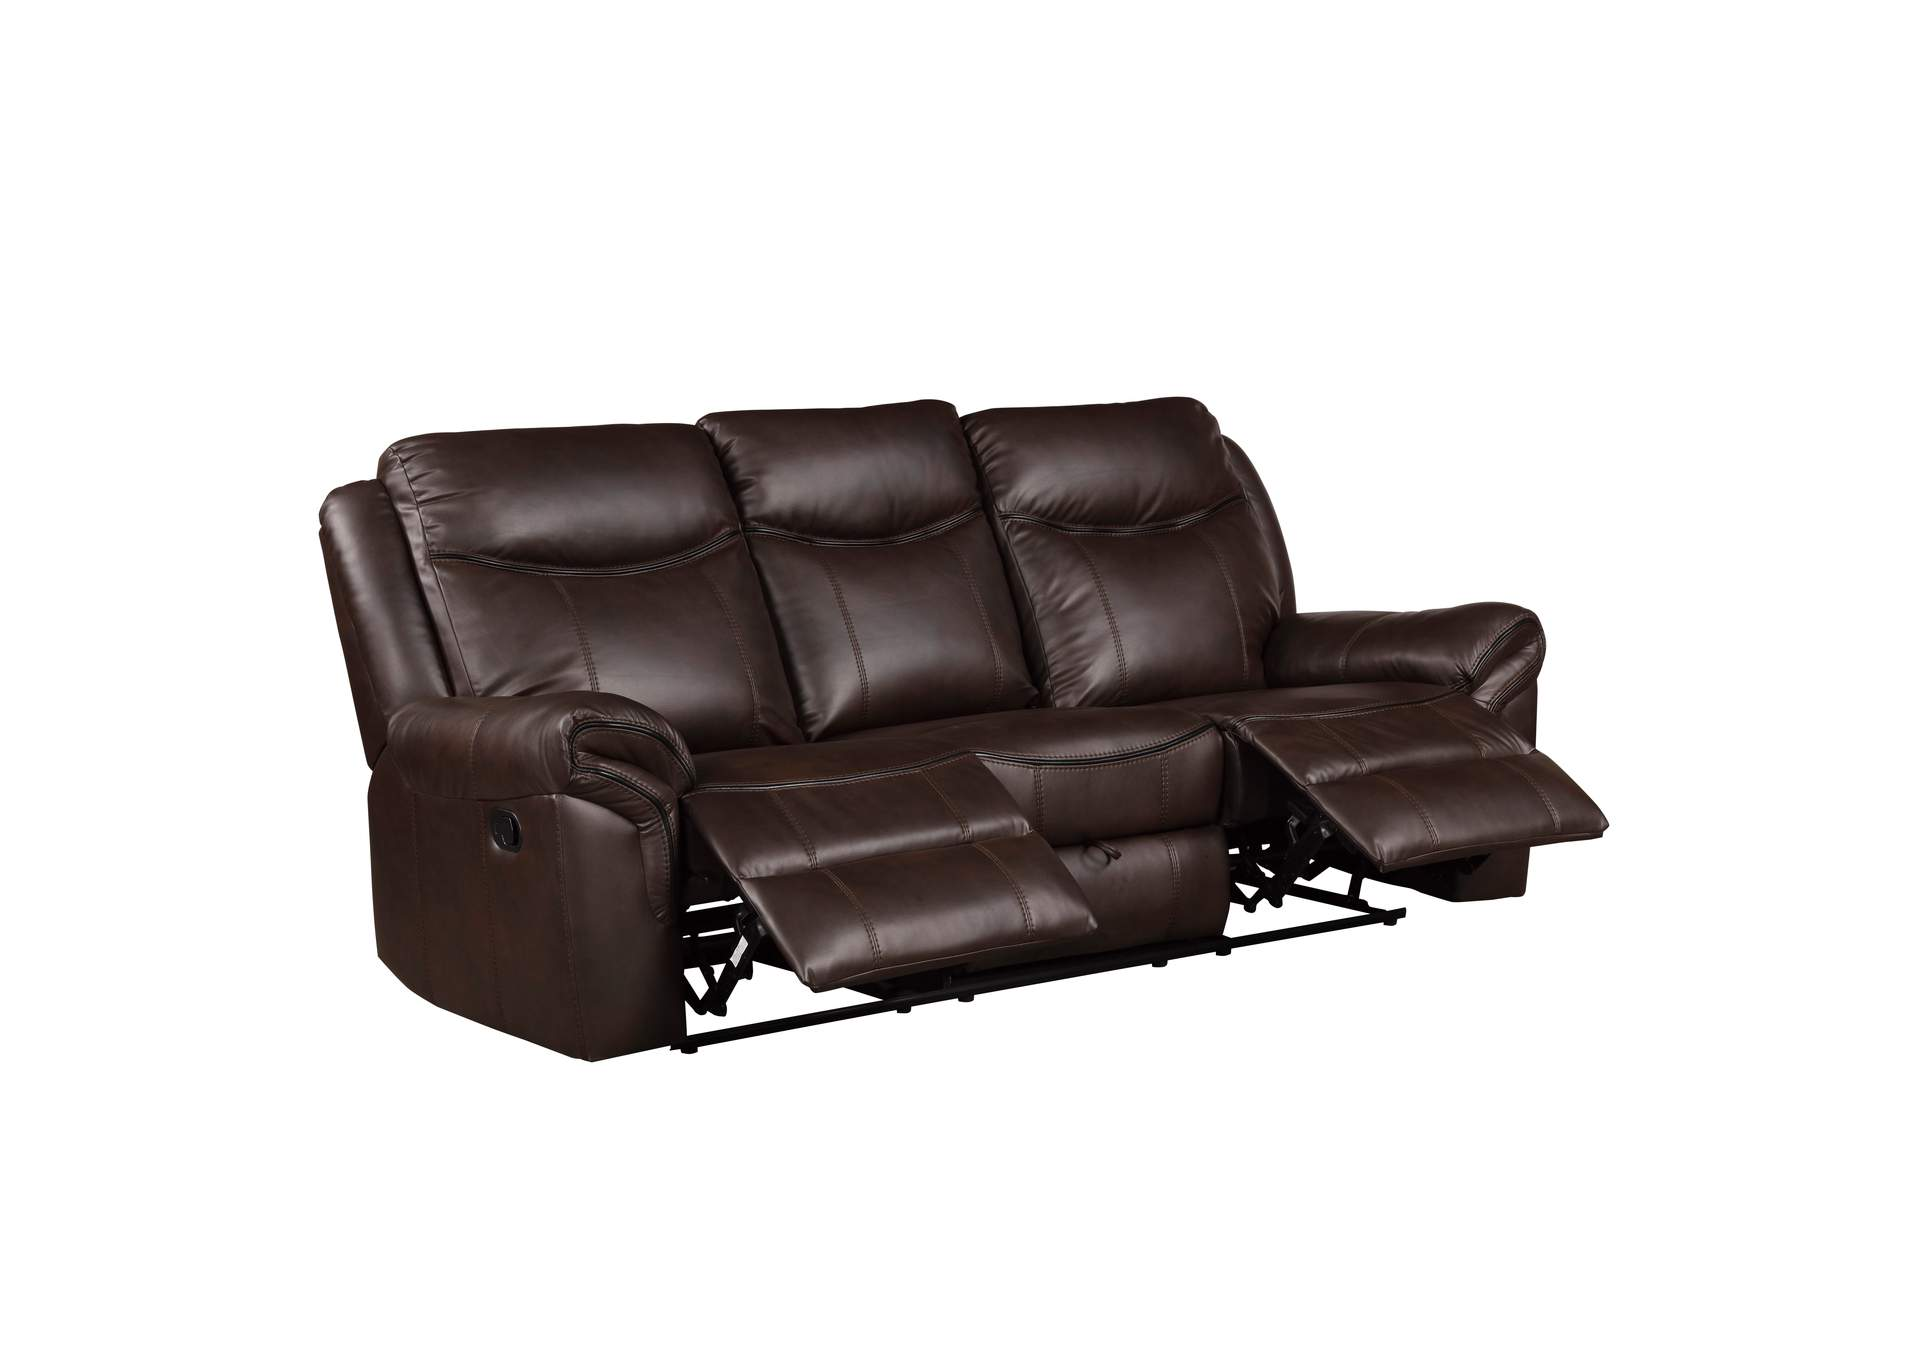 Dark Brown Double Reclining Sofa with Center Drop-Down Cup Holders, Receptacles, Hidden Drawer and USB Ports,Homelegance